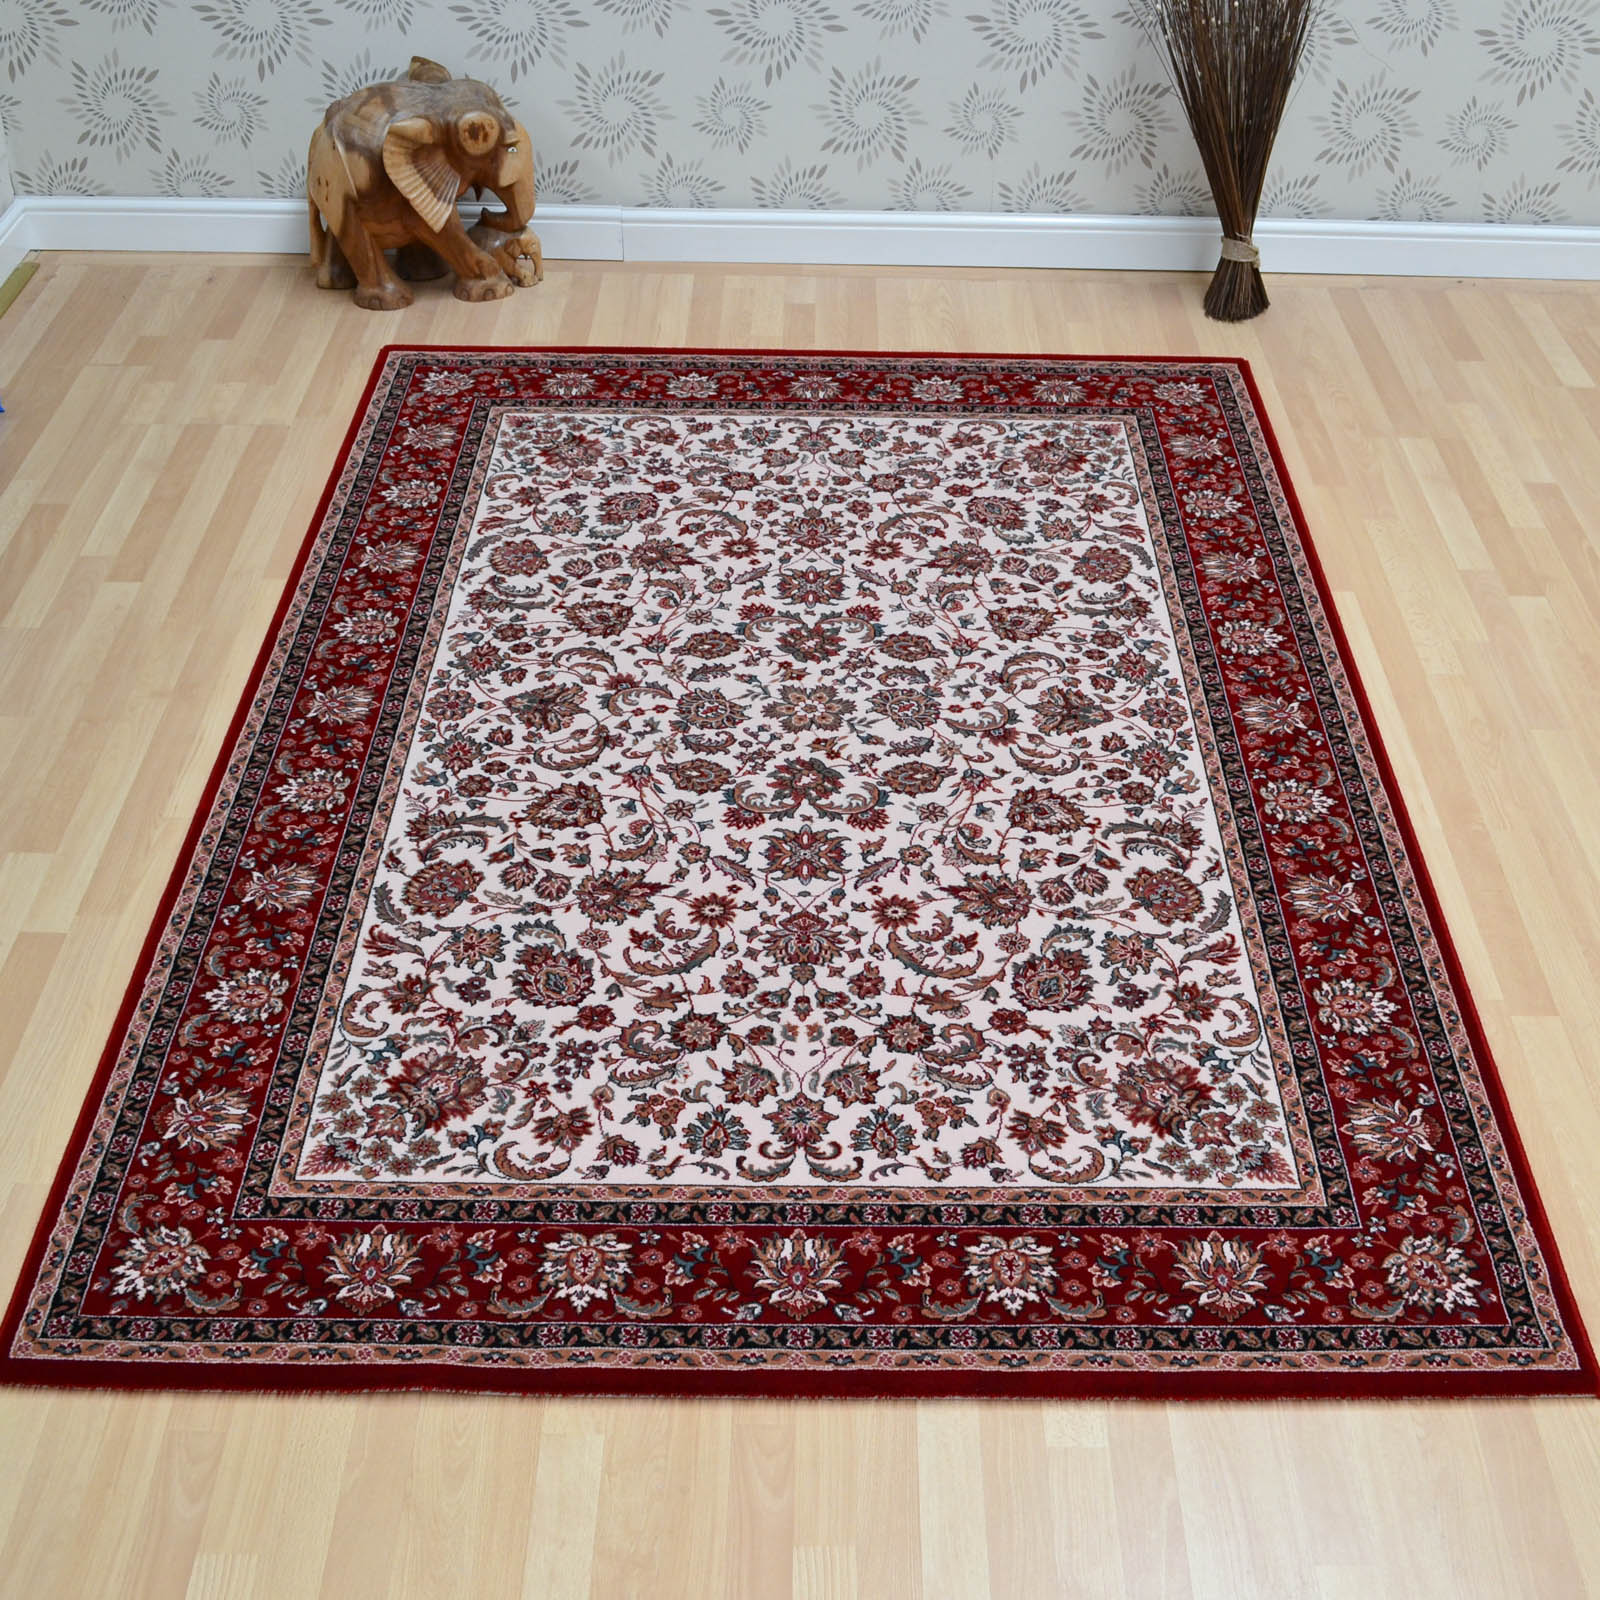 Nain Rugs 1276 680 Beige Red